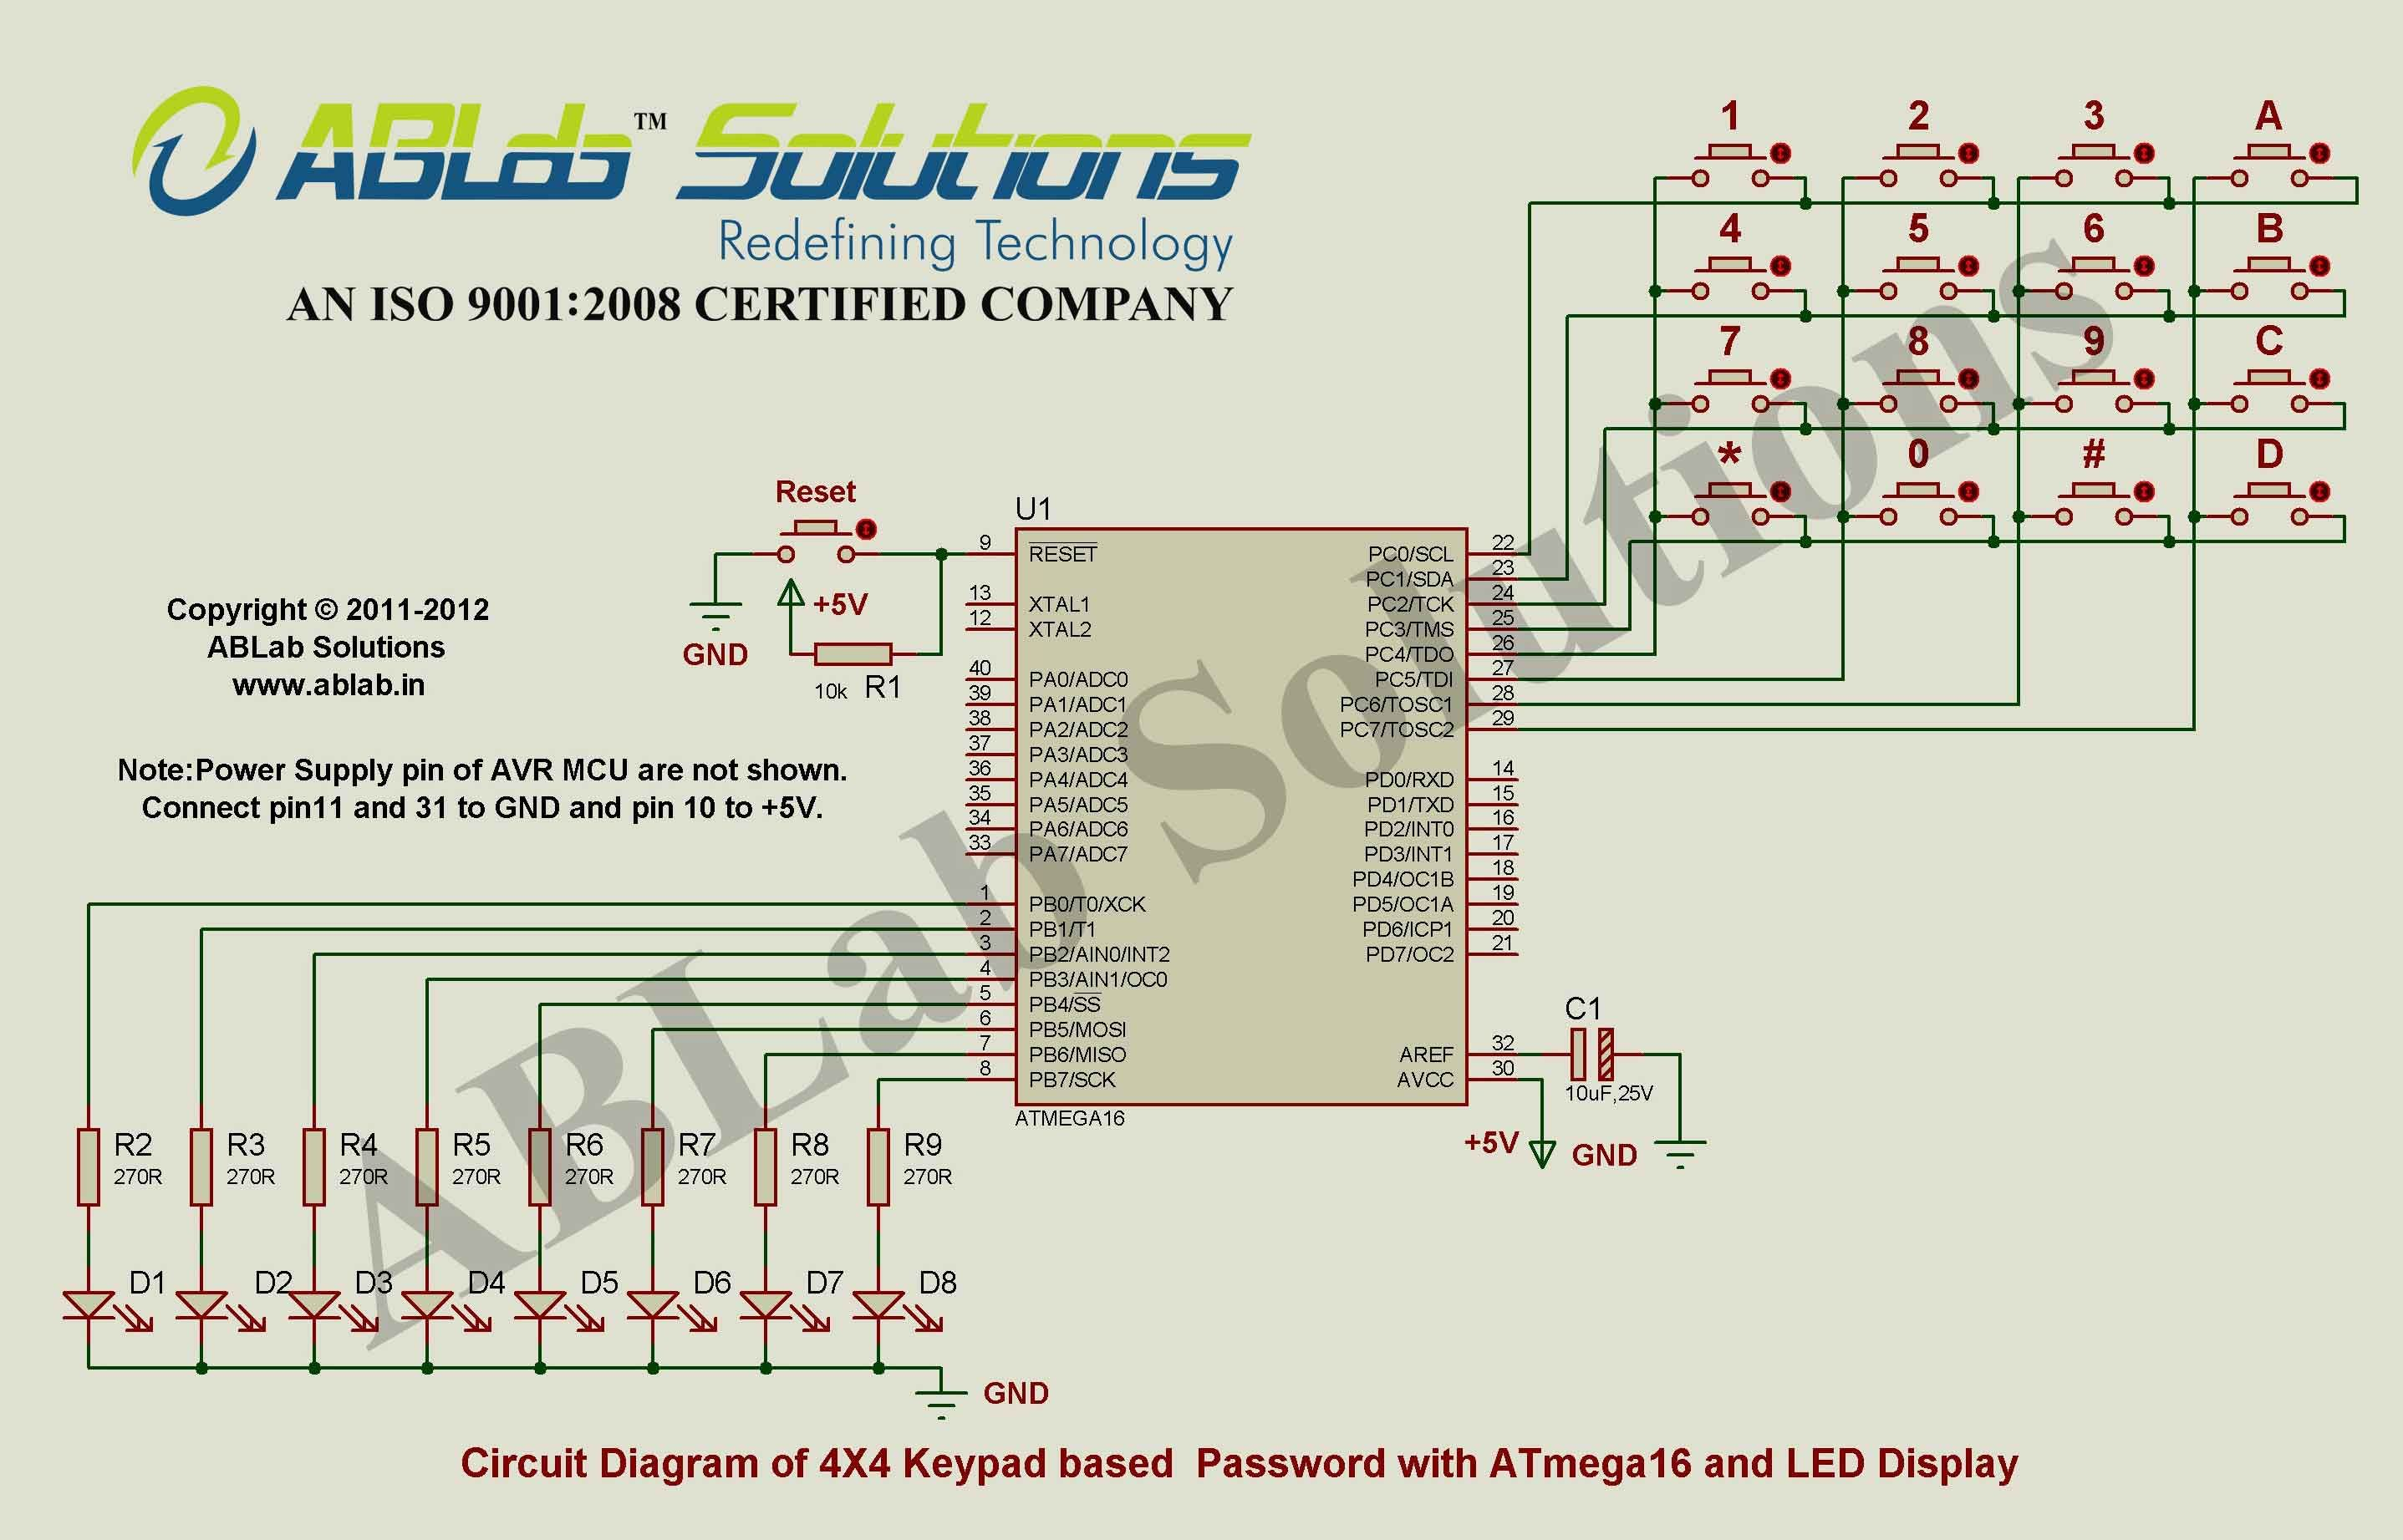 x4 keypad based password with avr atmega16 microcontroller and led display circuit diagram ablab solutions [ 2875 x 1843 Pixel ]